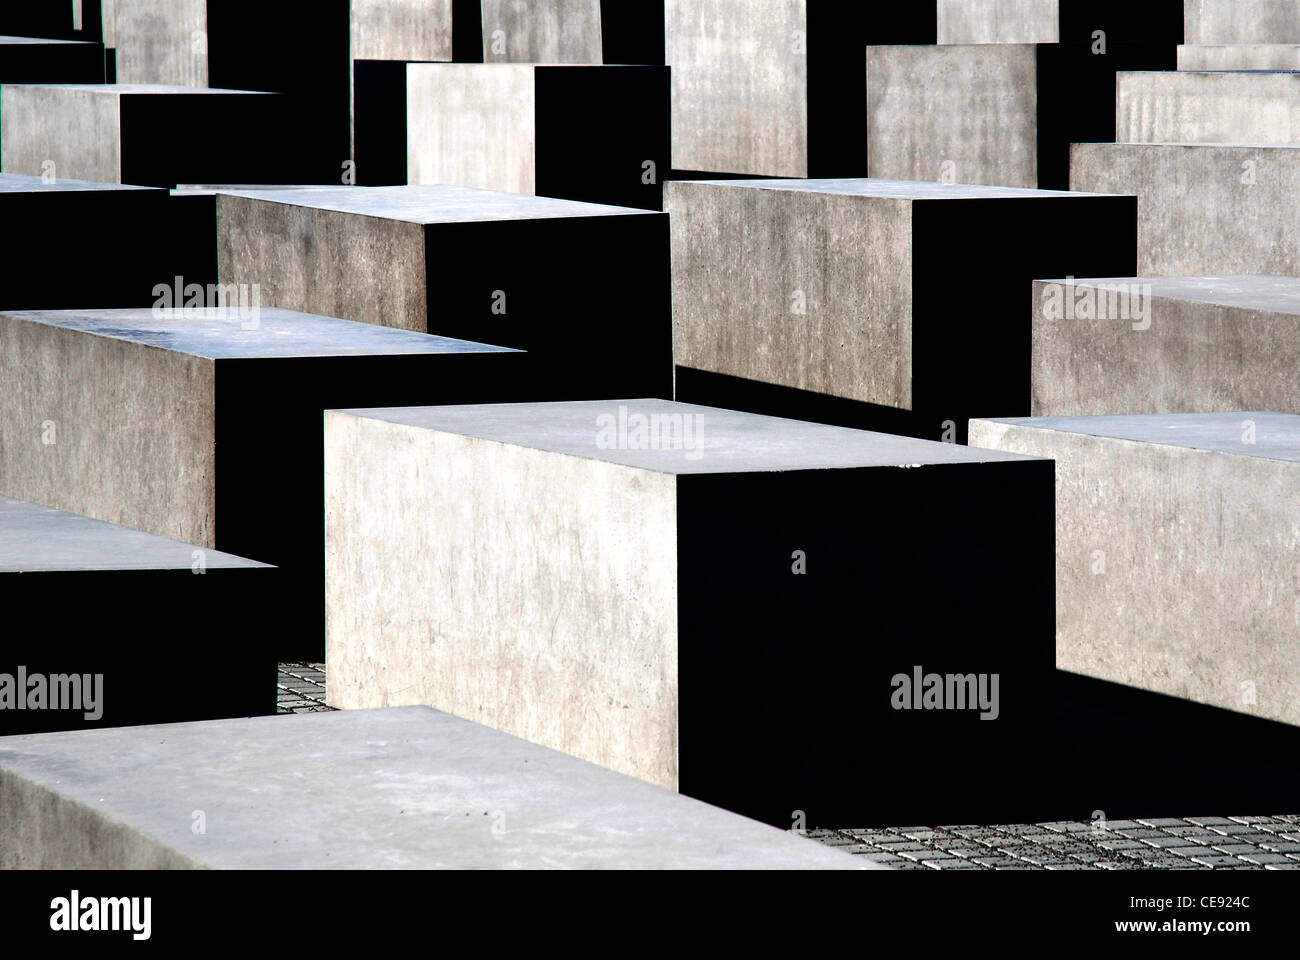 Memorial to the Murdered Jews of Europe in Berlin. - Stock Image